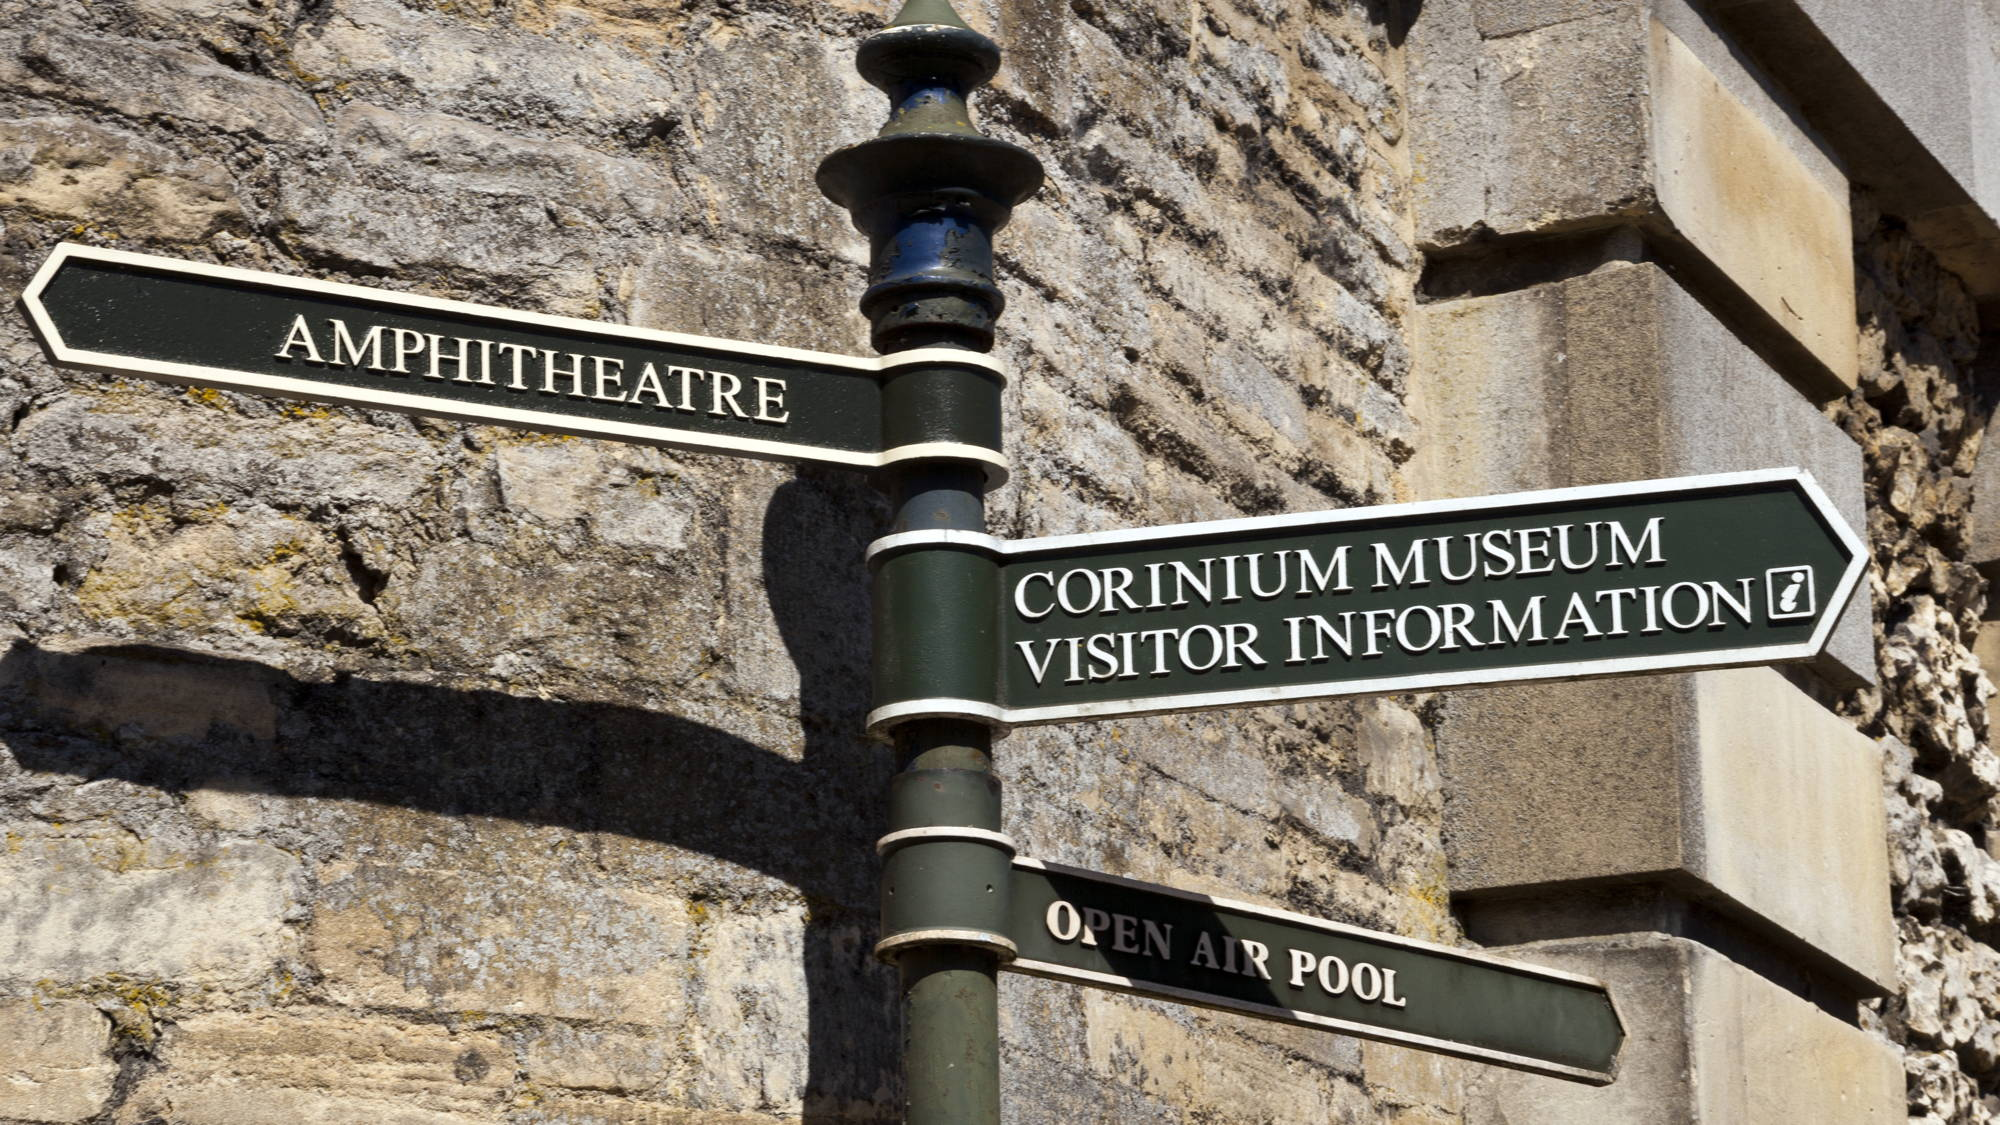 Cotswold Horse Tours is based in Cirencester, the 'Capital of the Cotswolds'